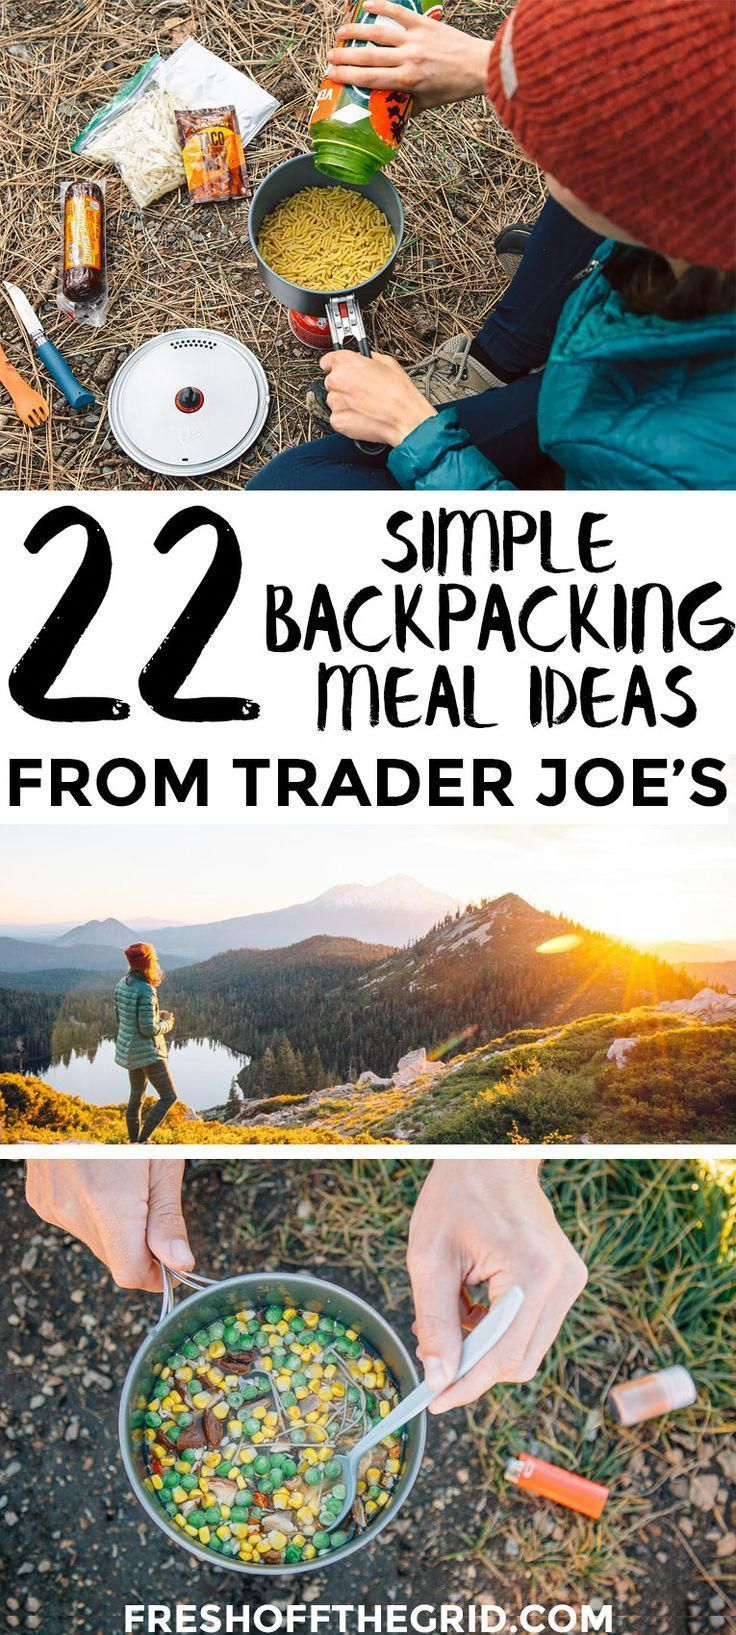 22 Easy Backpacking Meal Concepts from Dealer Joe's